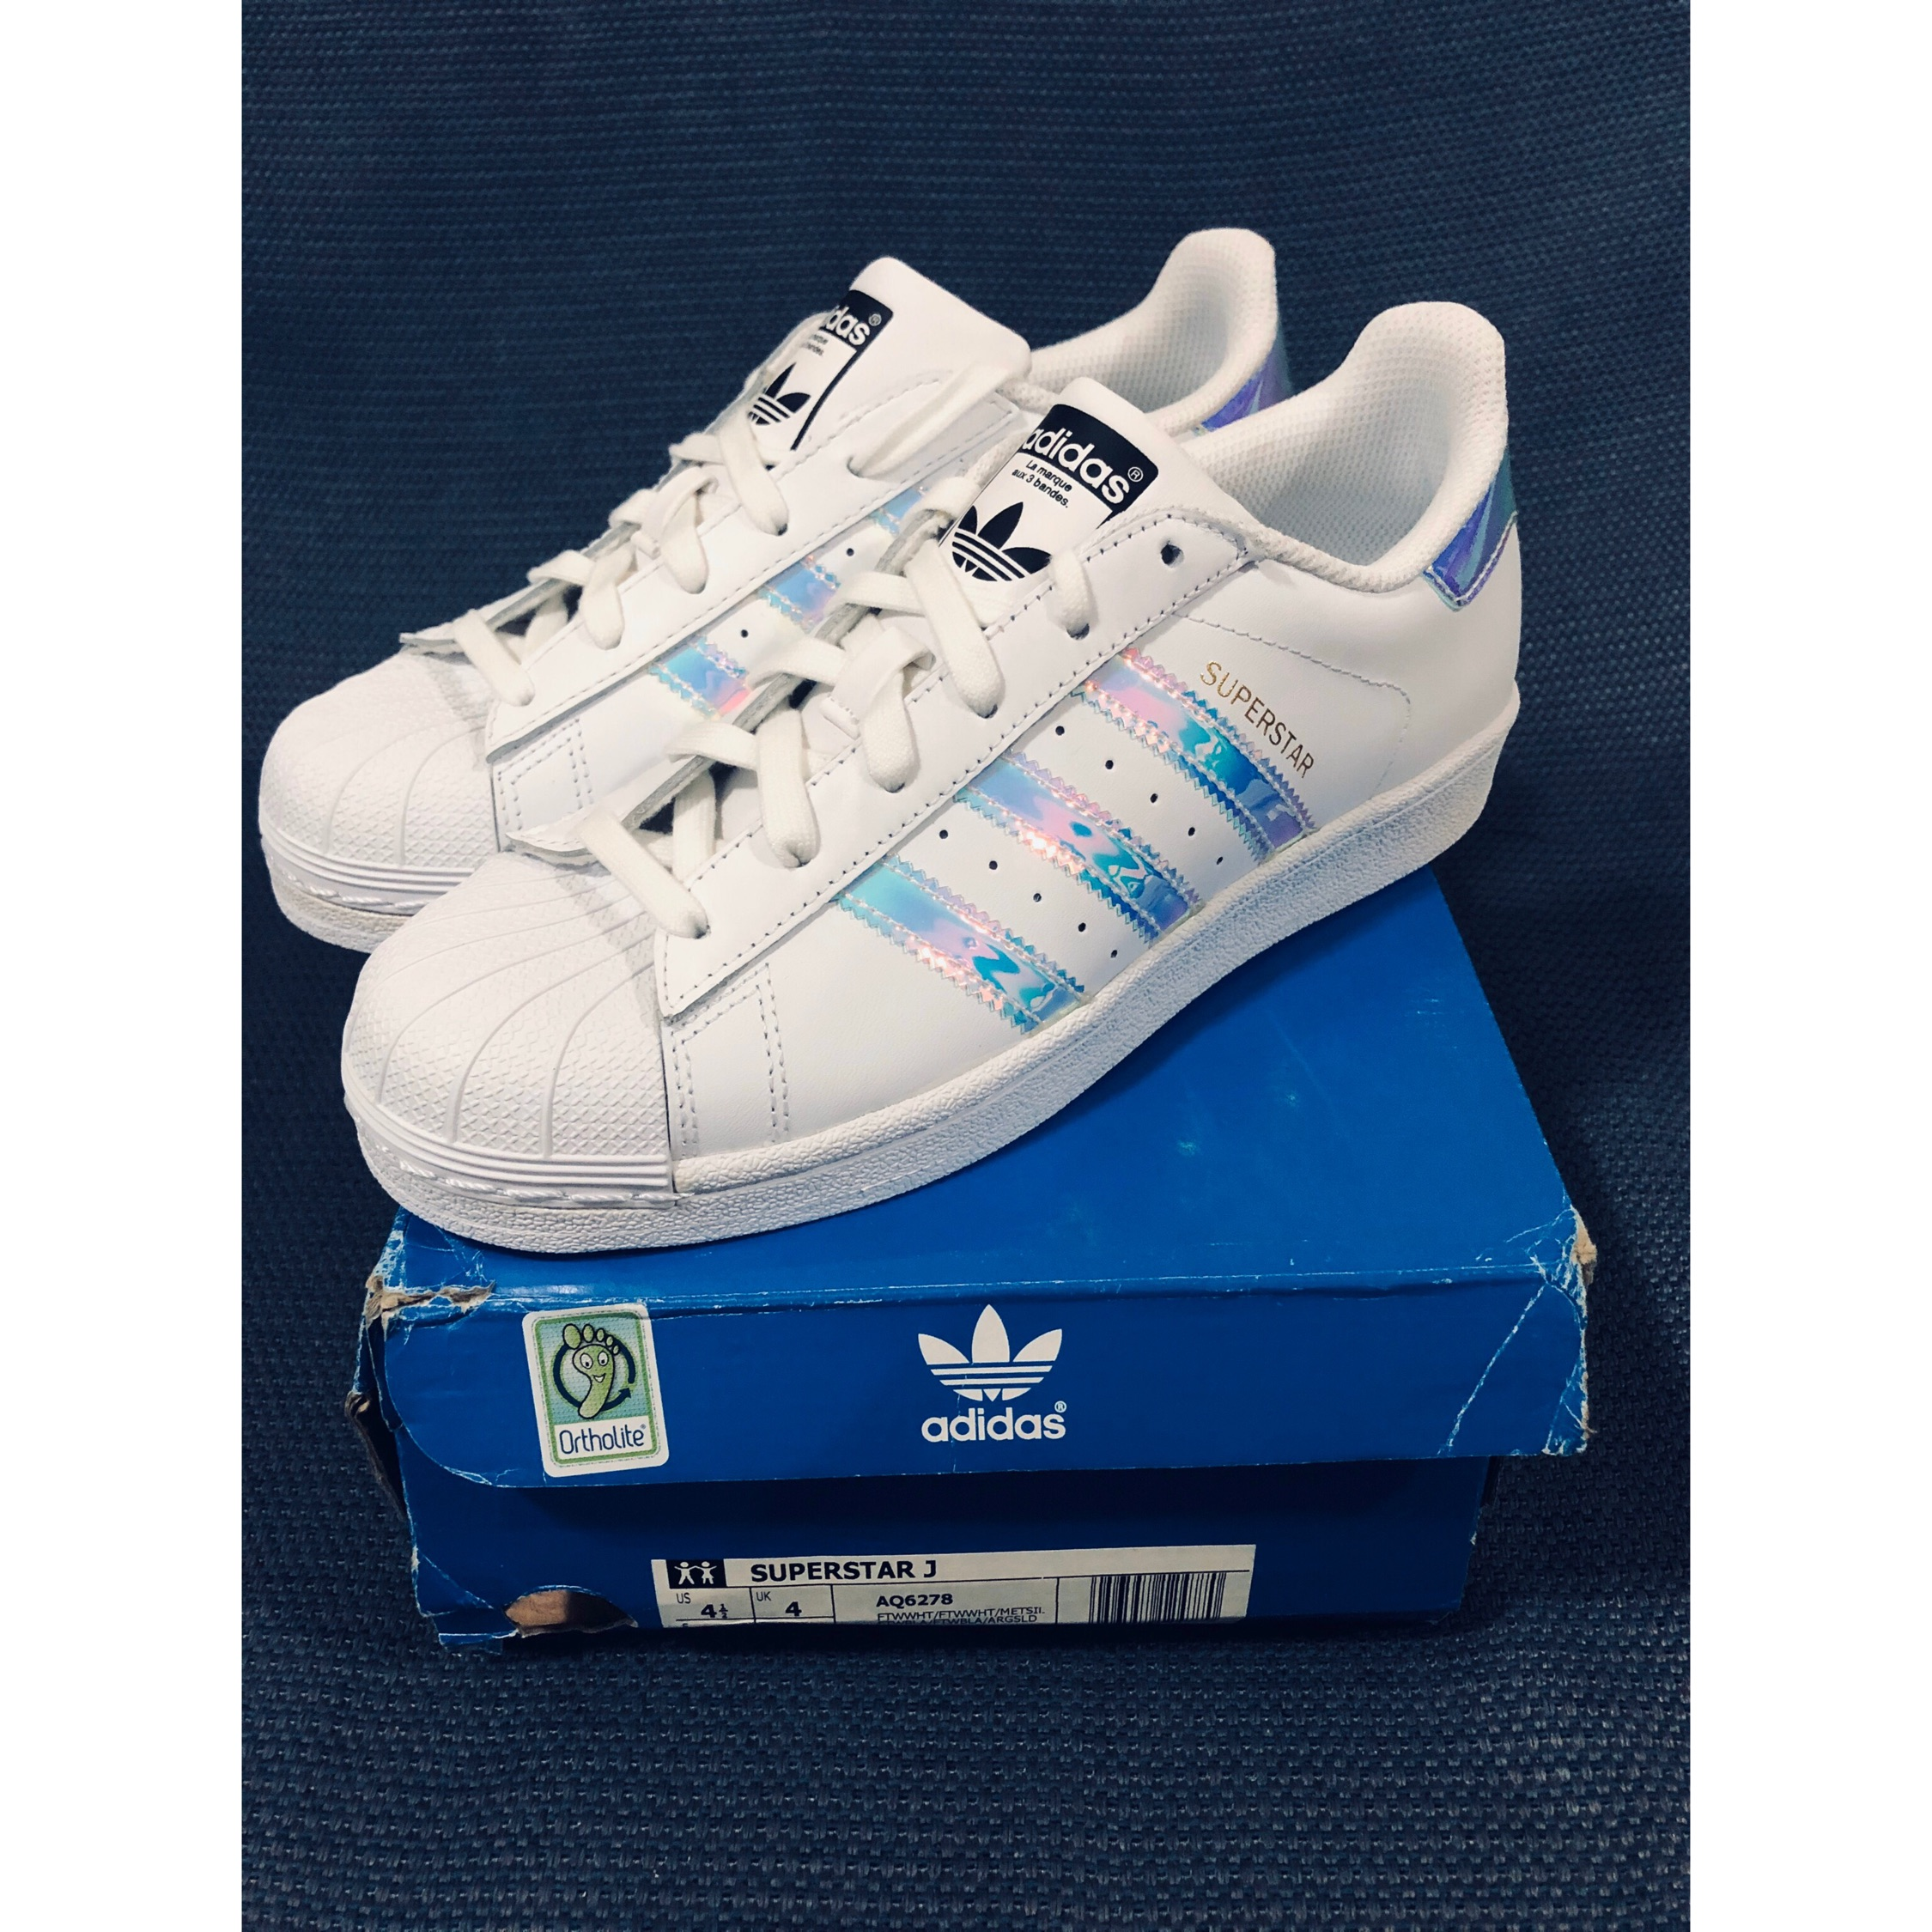 adidas superstar 4.5 59% di sconto sglabs.it